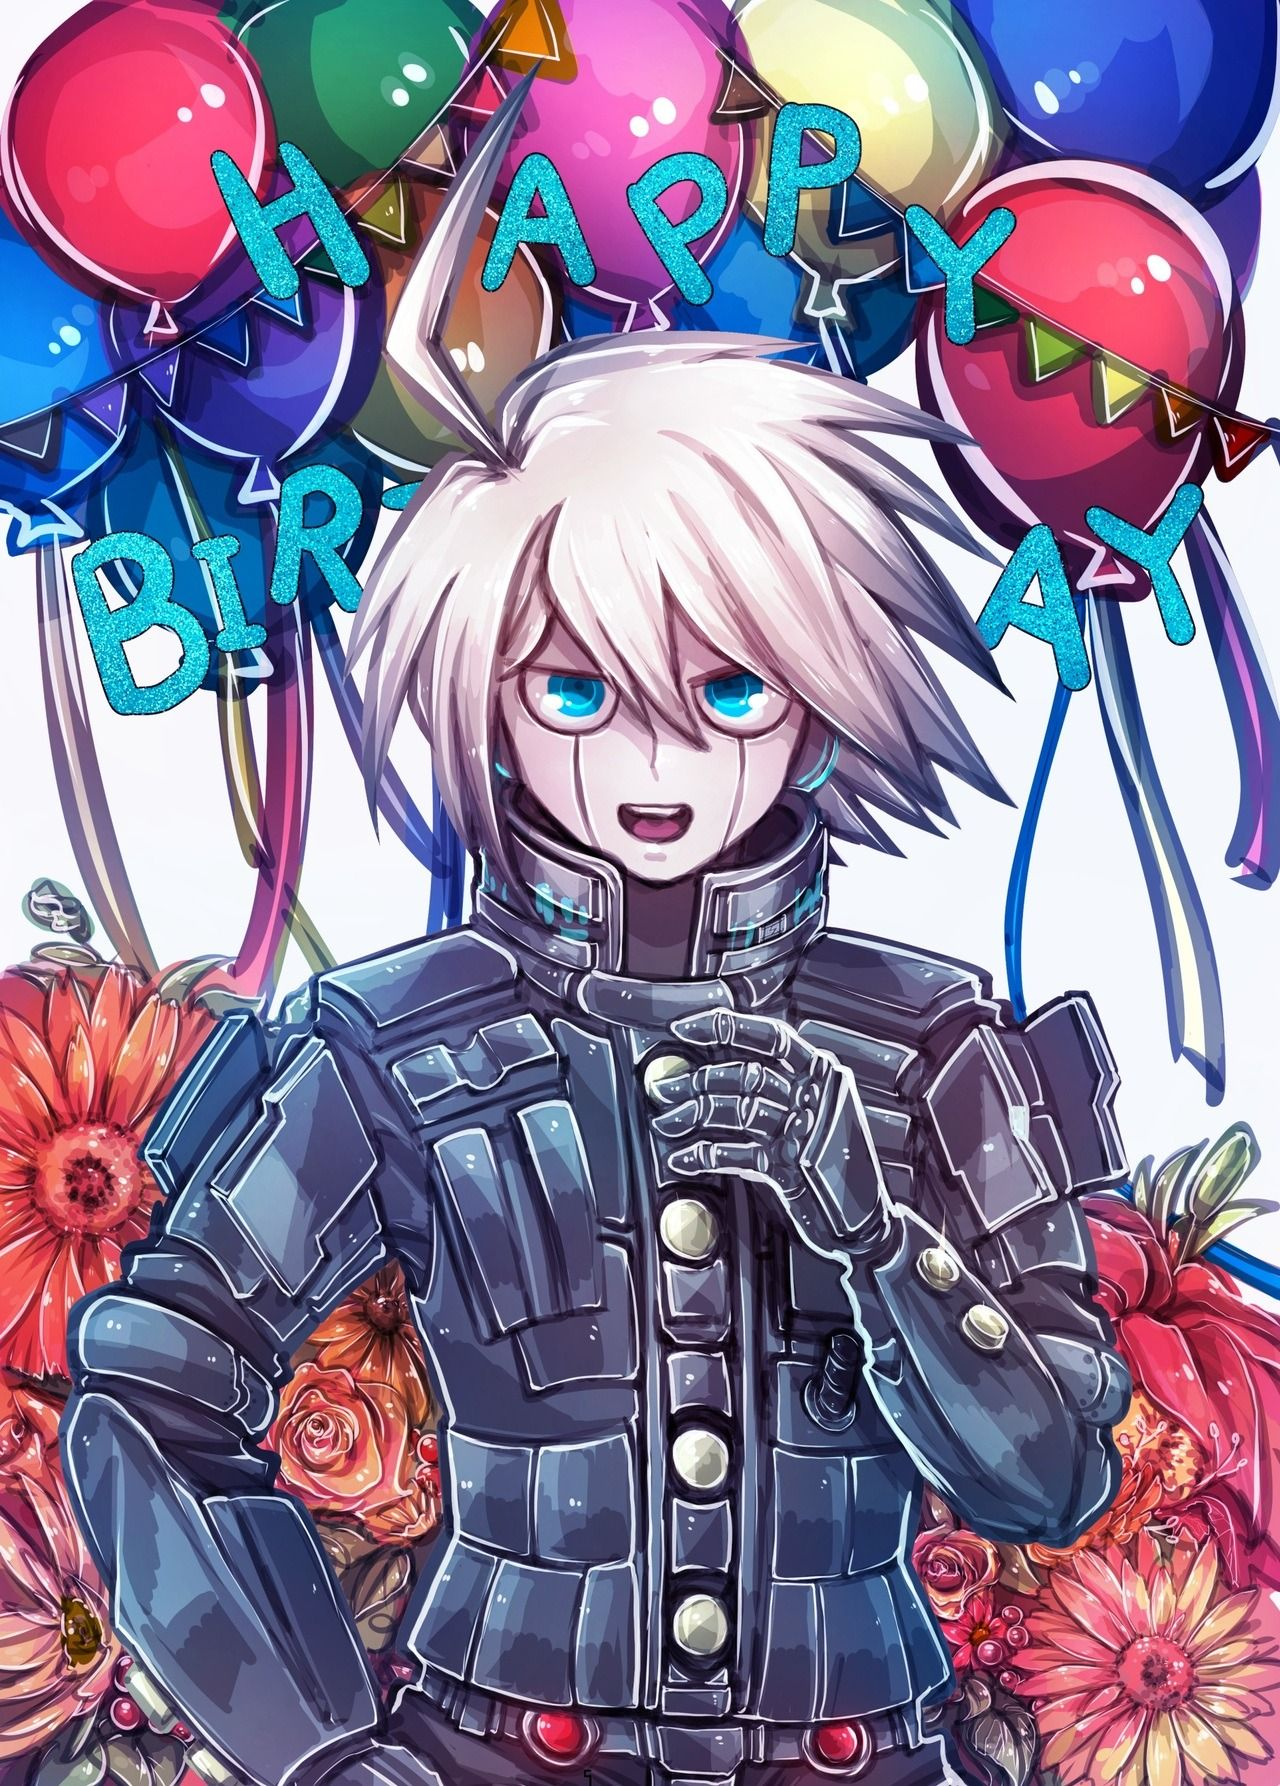 2 more days until Keebo's Birthday second art i used for